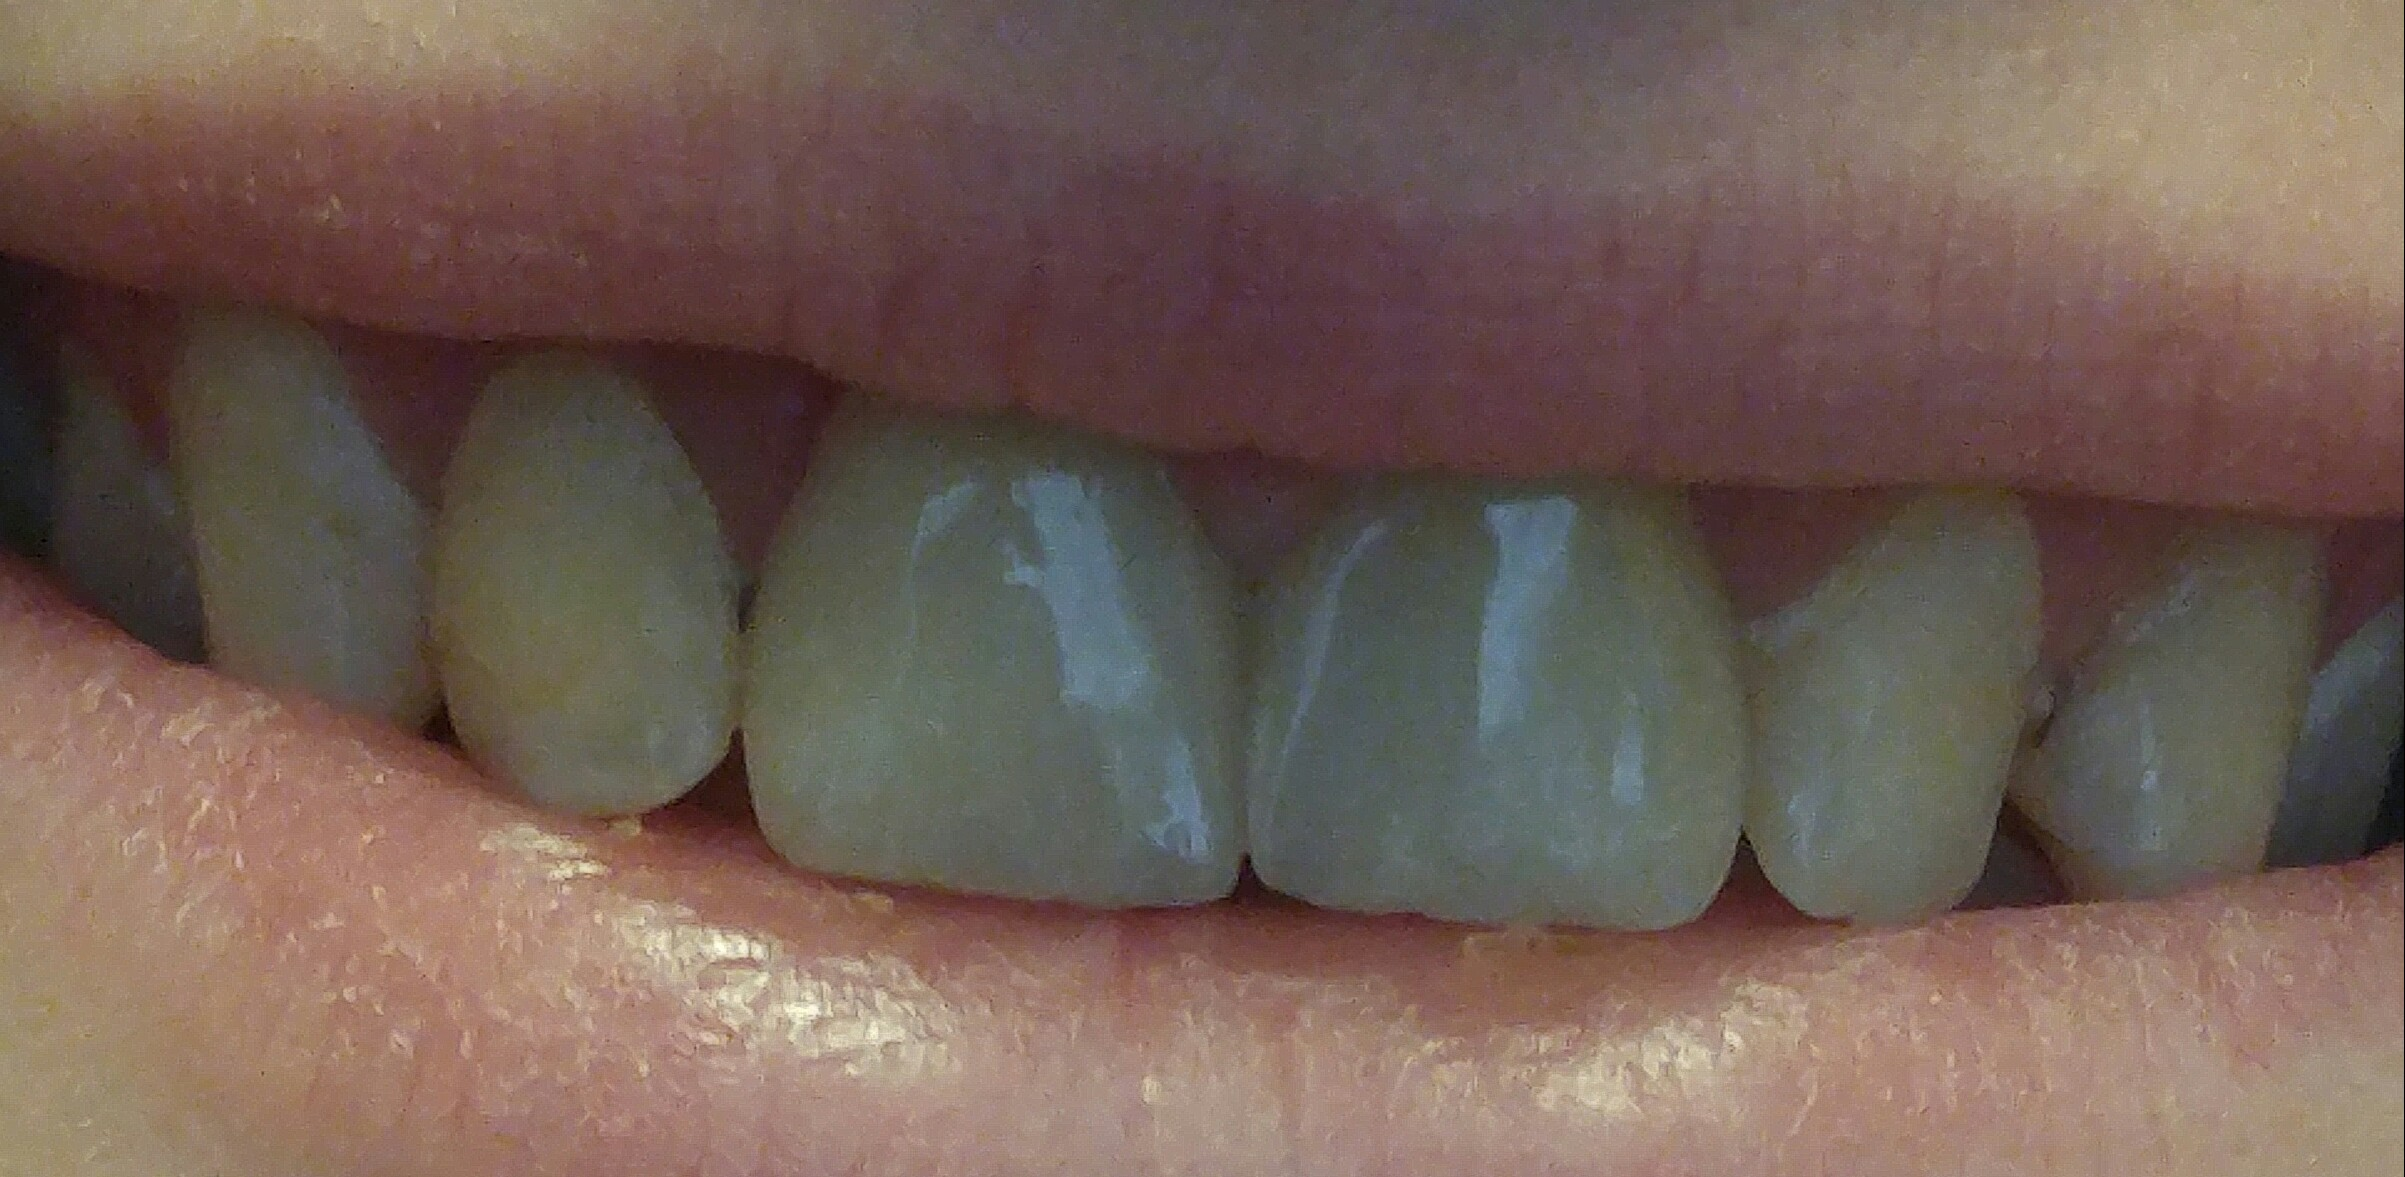 Cerec Crowns #6 thru #11